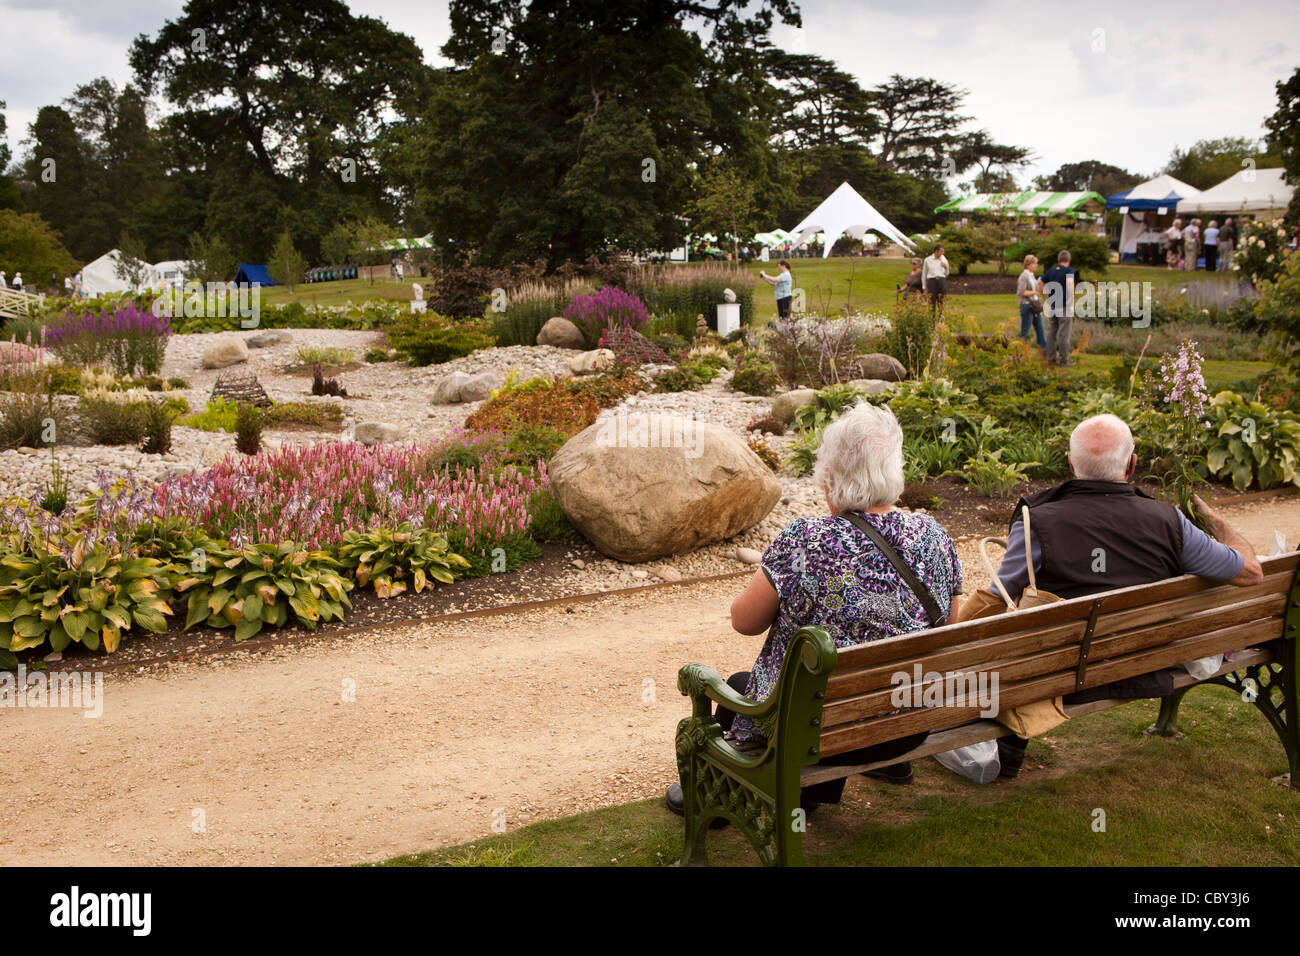 UK, England, Bedfordshire, Woburn Abbey Garden Show, mature couple ...